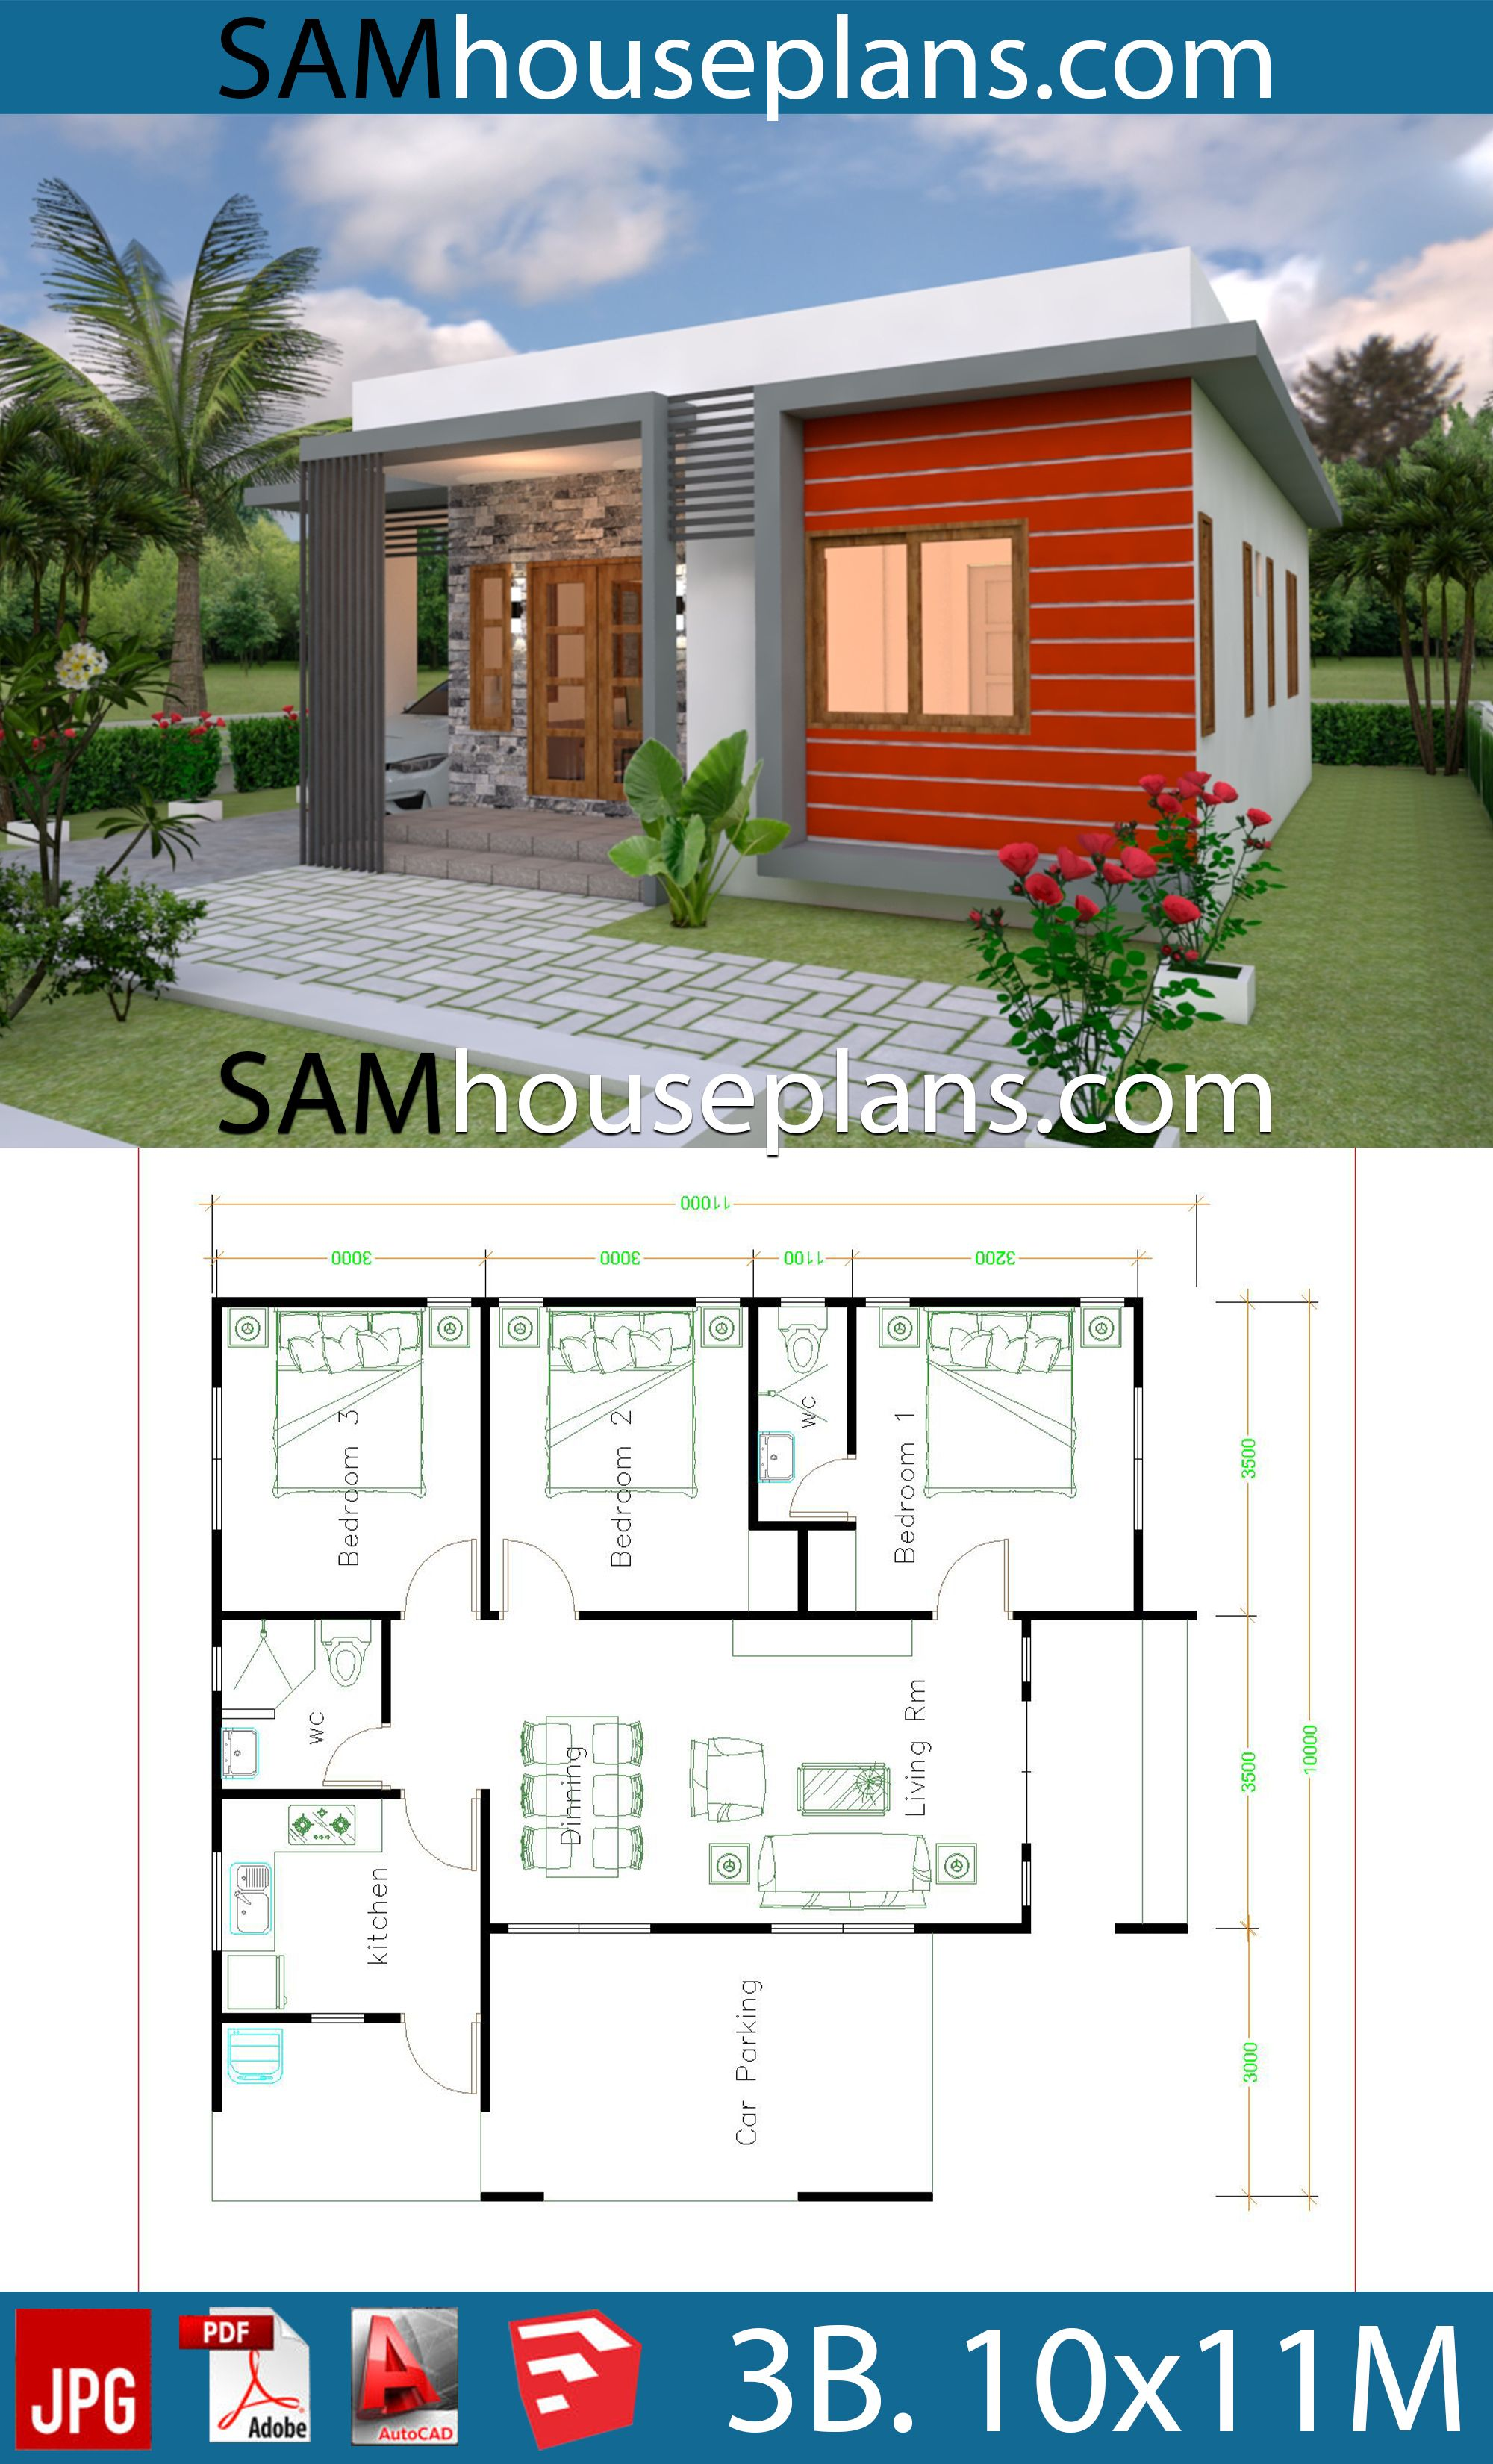 House Plans 10x11 With 3 Bedrooms Sam House Plans Beautiful House Plans Modern House Plans Guest House Plans